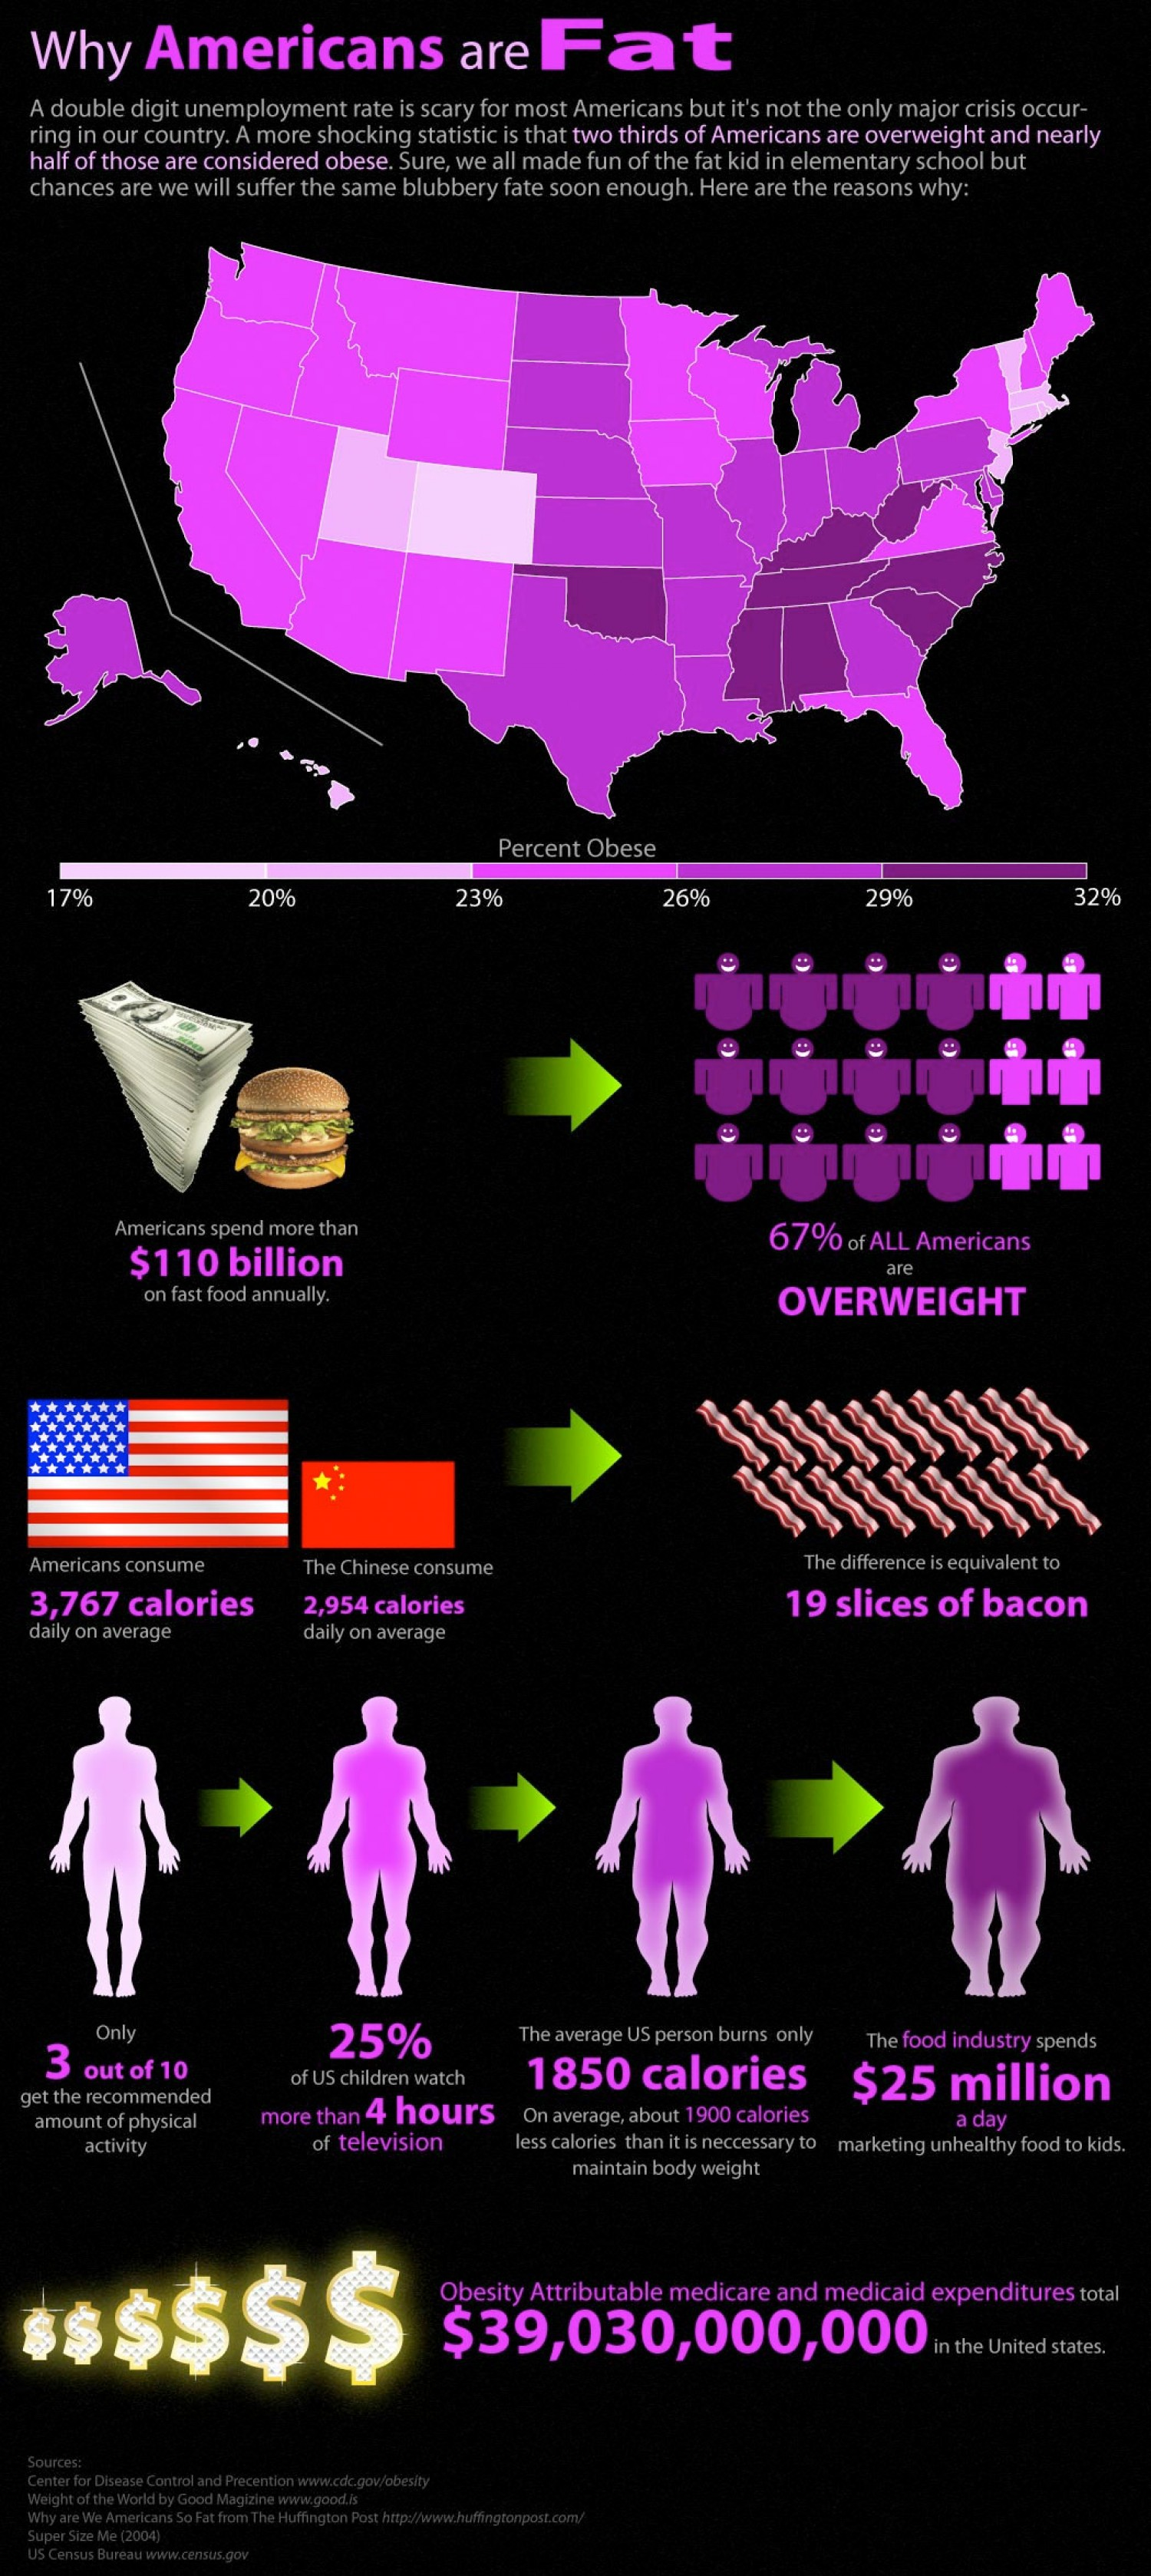 20. Why Americans are Fat